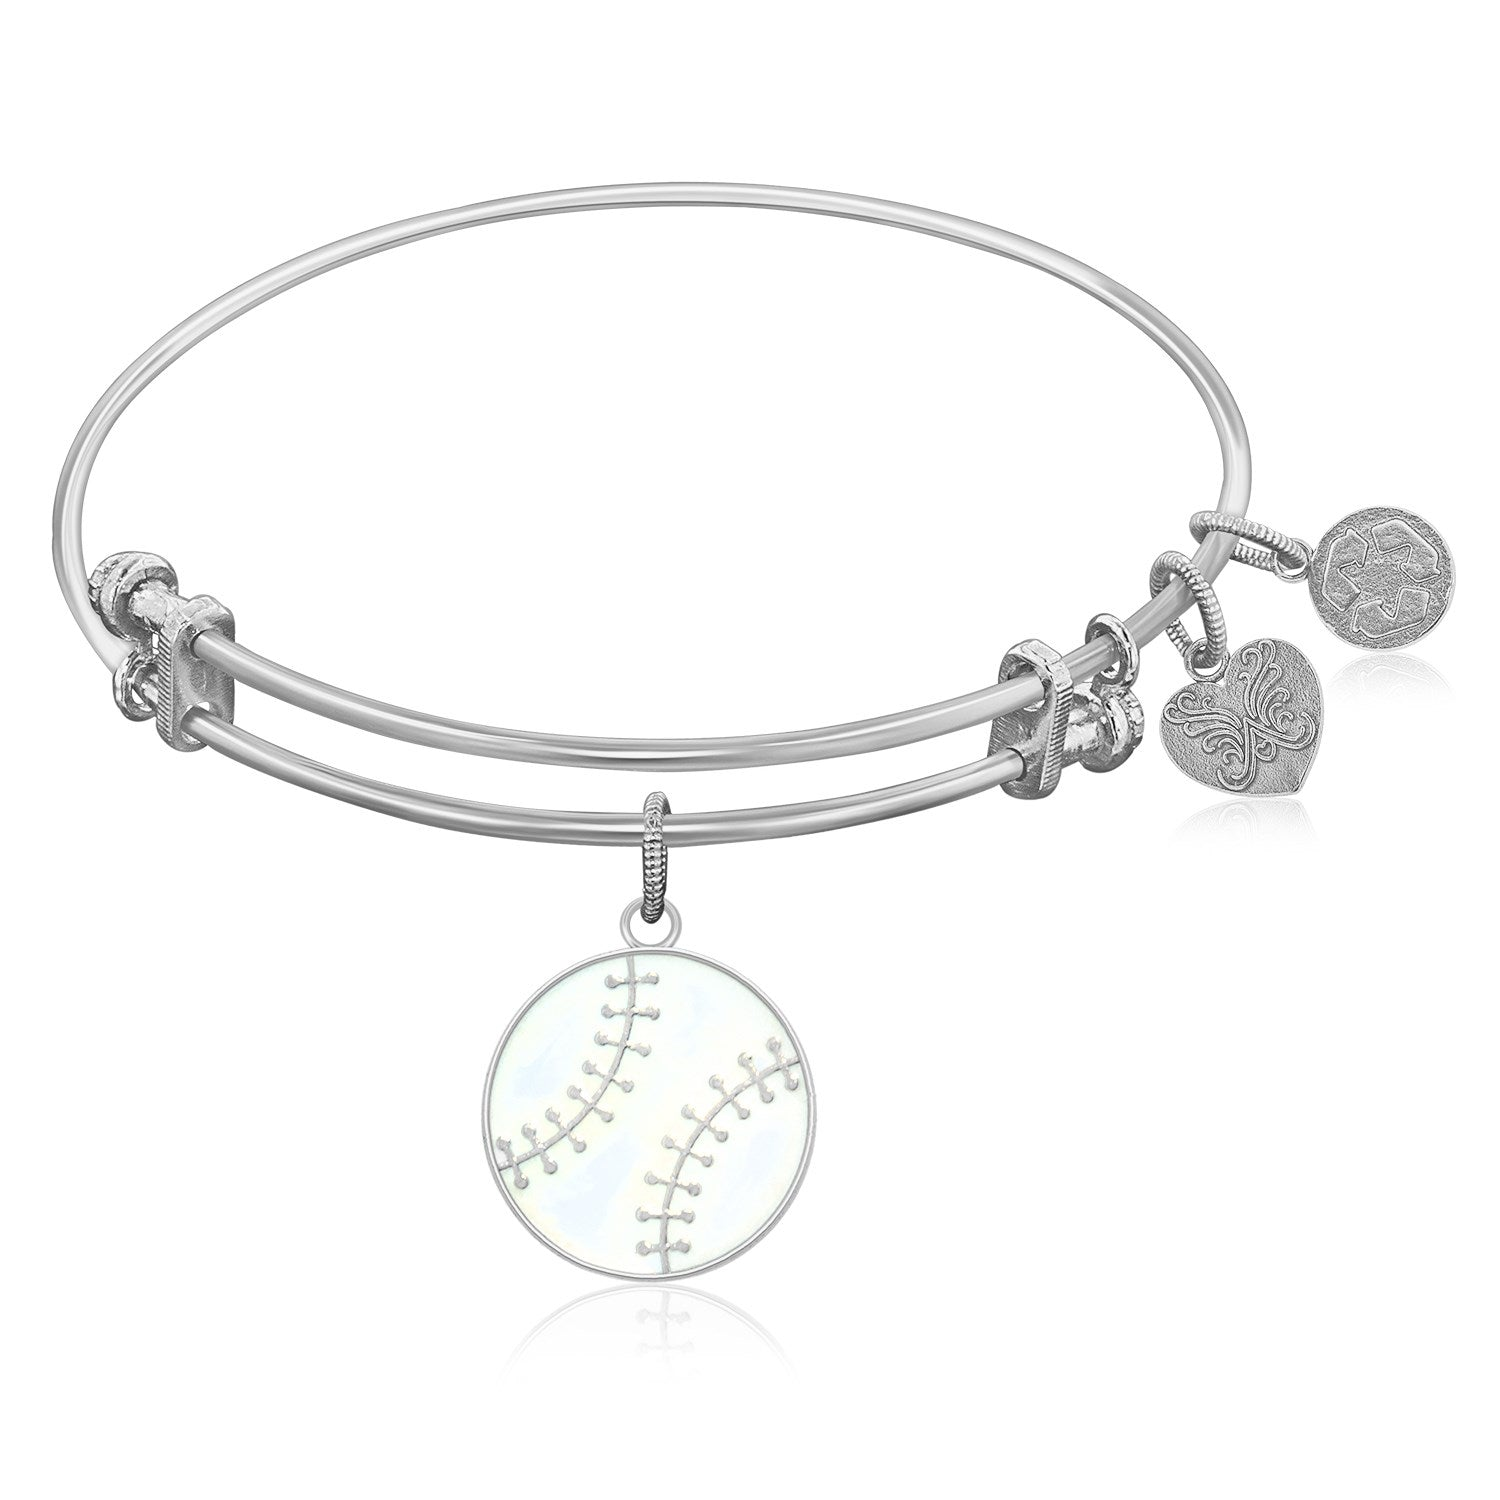 Expandable Bangle in White Tone Brass with Baseball Symbol